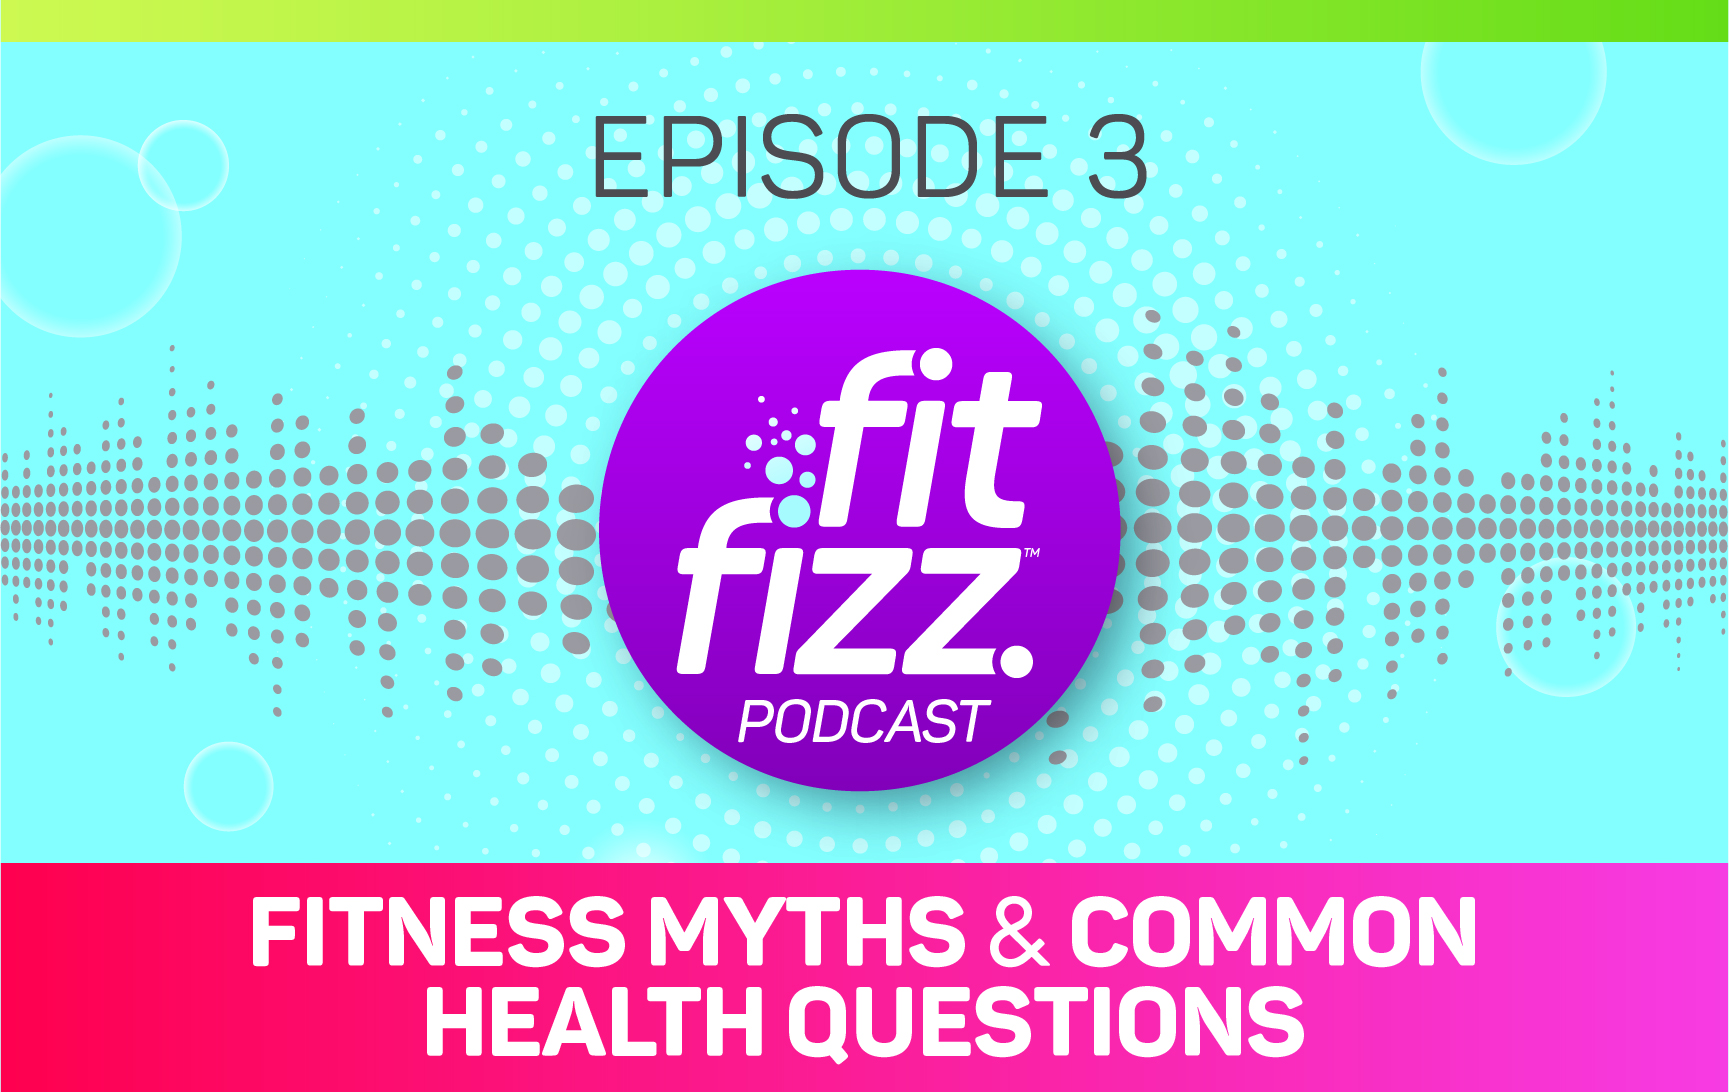 Podcast Episode 3: Fitness Myths and Common Health Questions